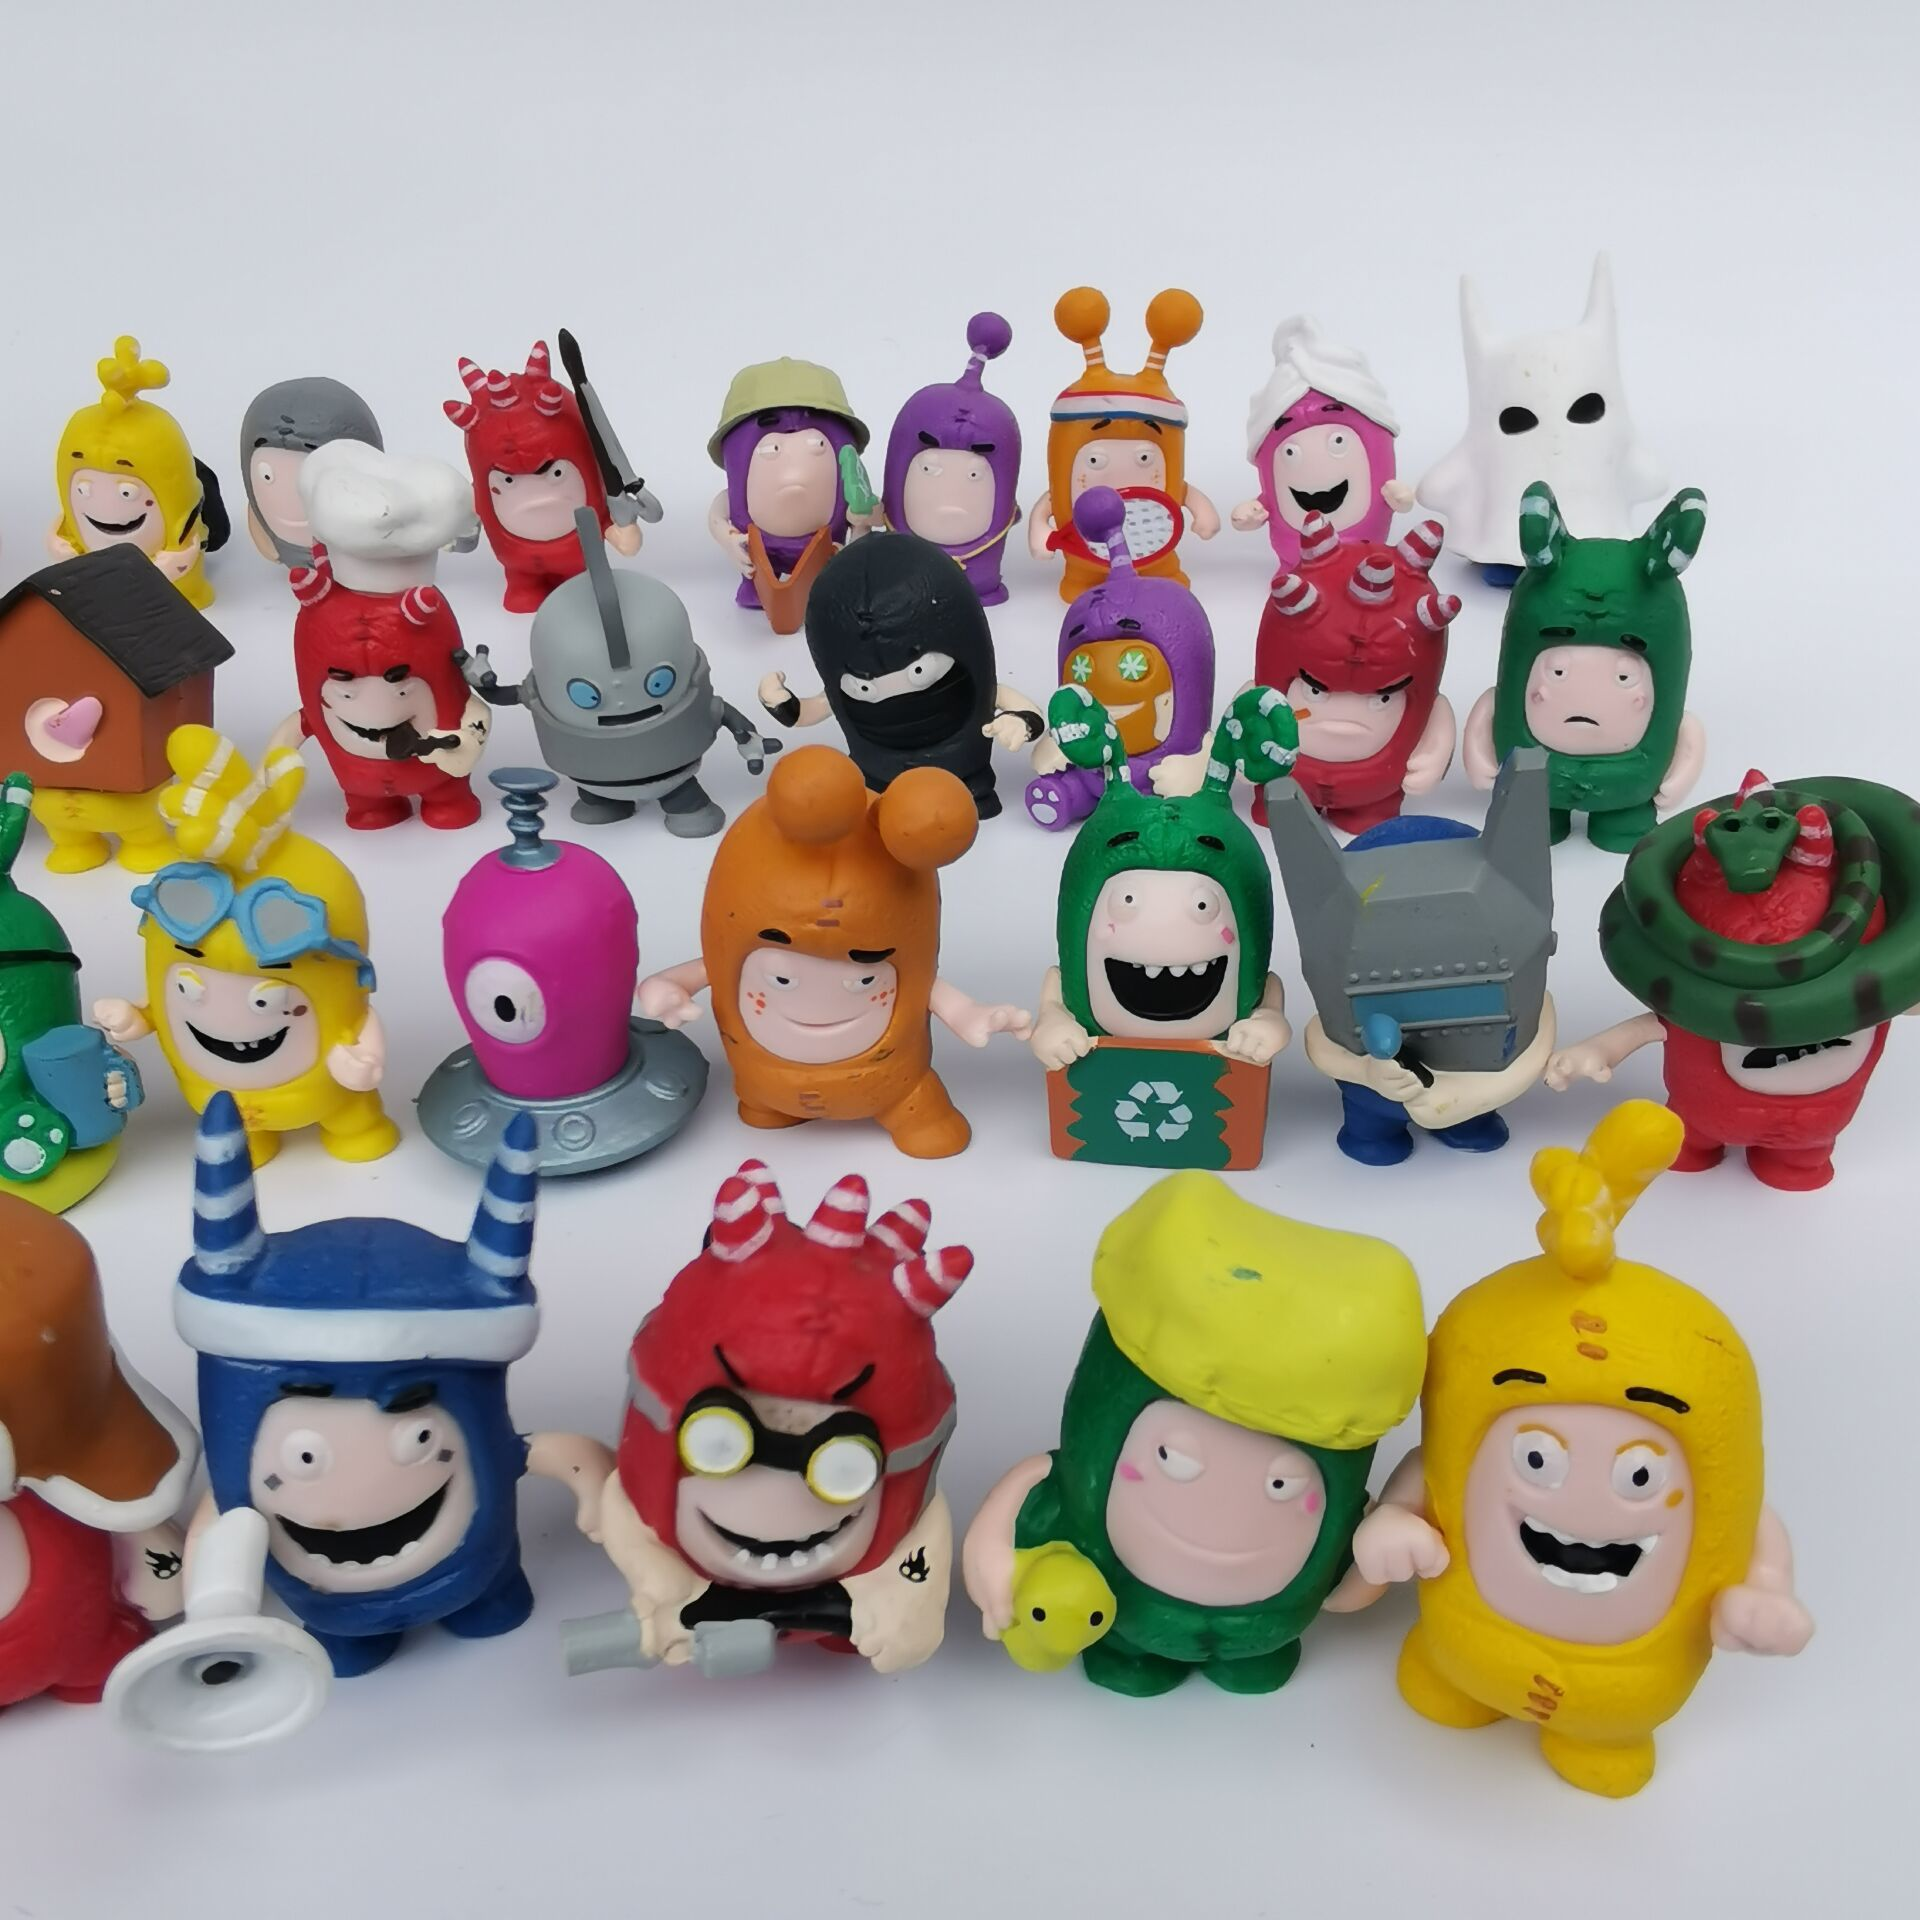 Action-Figure-Toys Model Doll Jeff Oddbods Collecting Kids Mini Cartoon for Boy Juguete